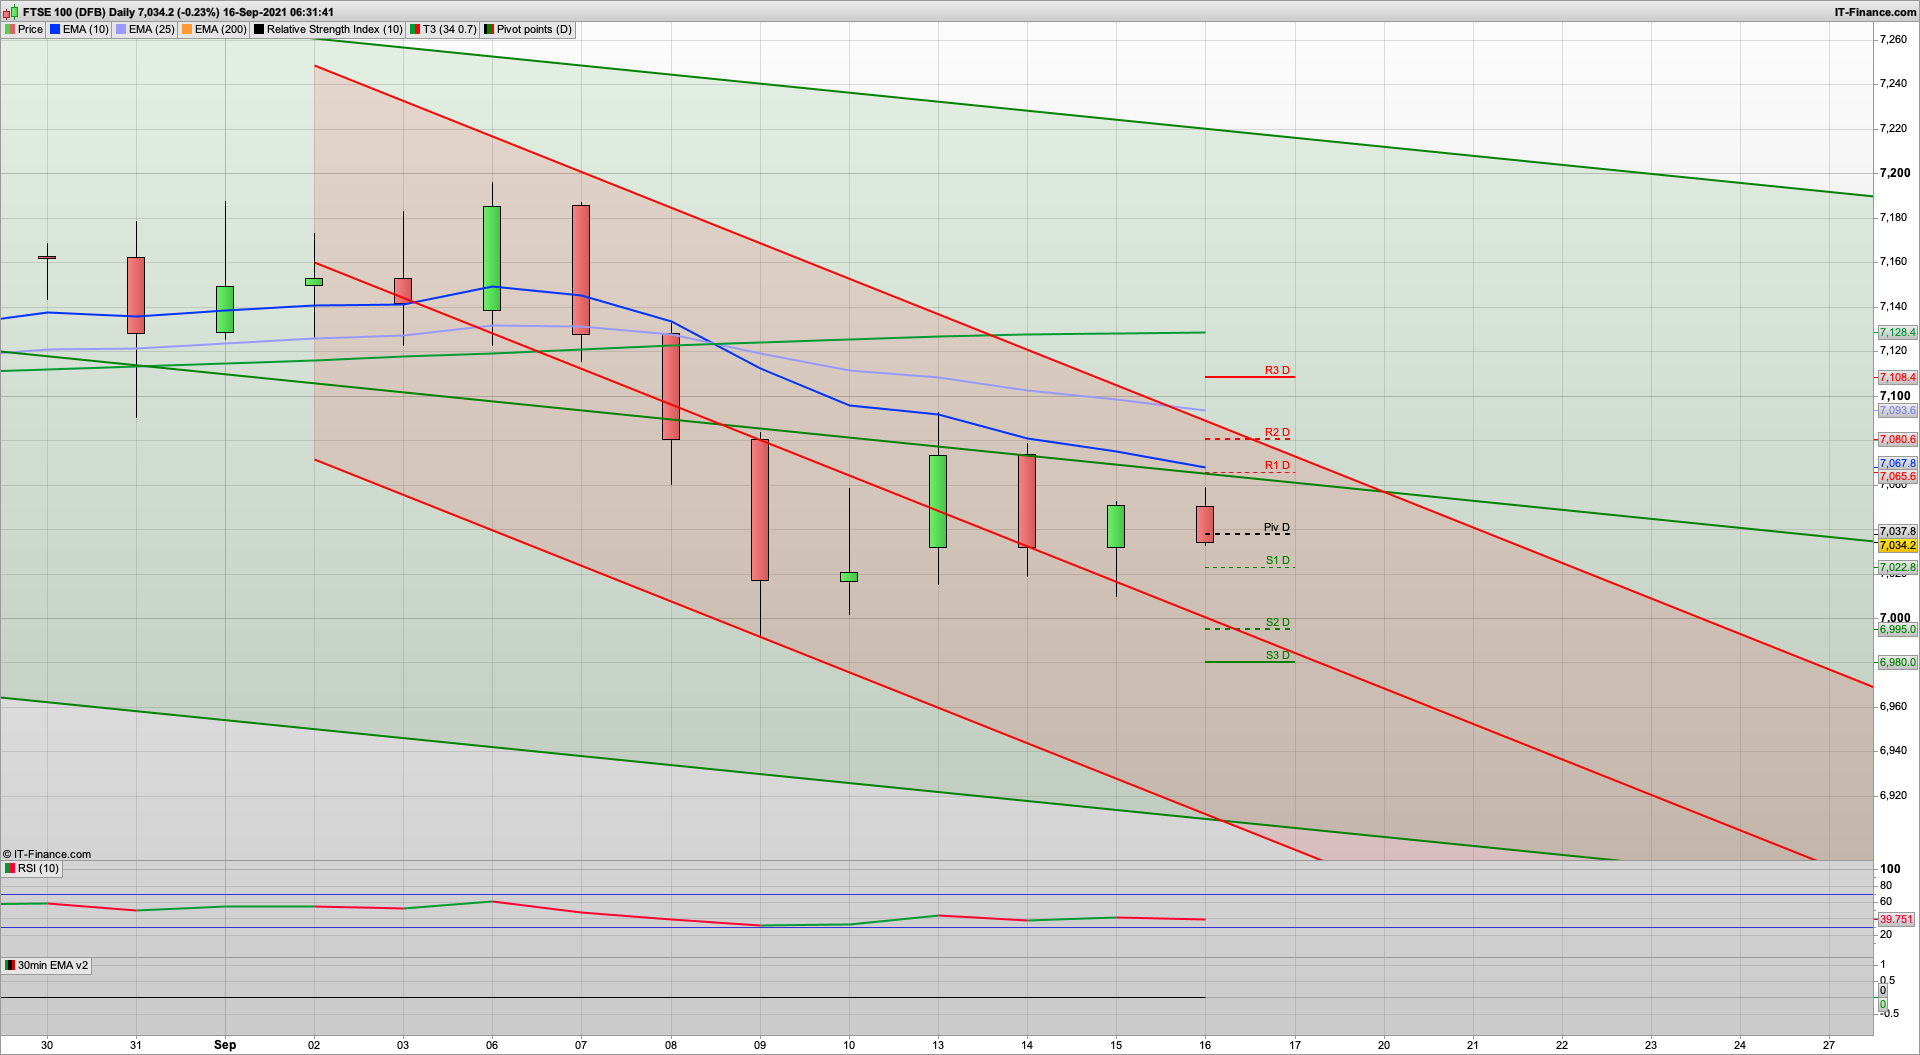 Could start to get more bullish | 7085 7095 7108 resistance | 7022 6995 6980 support